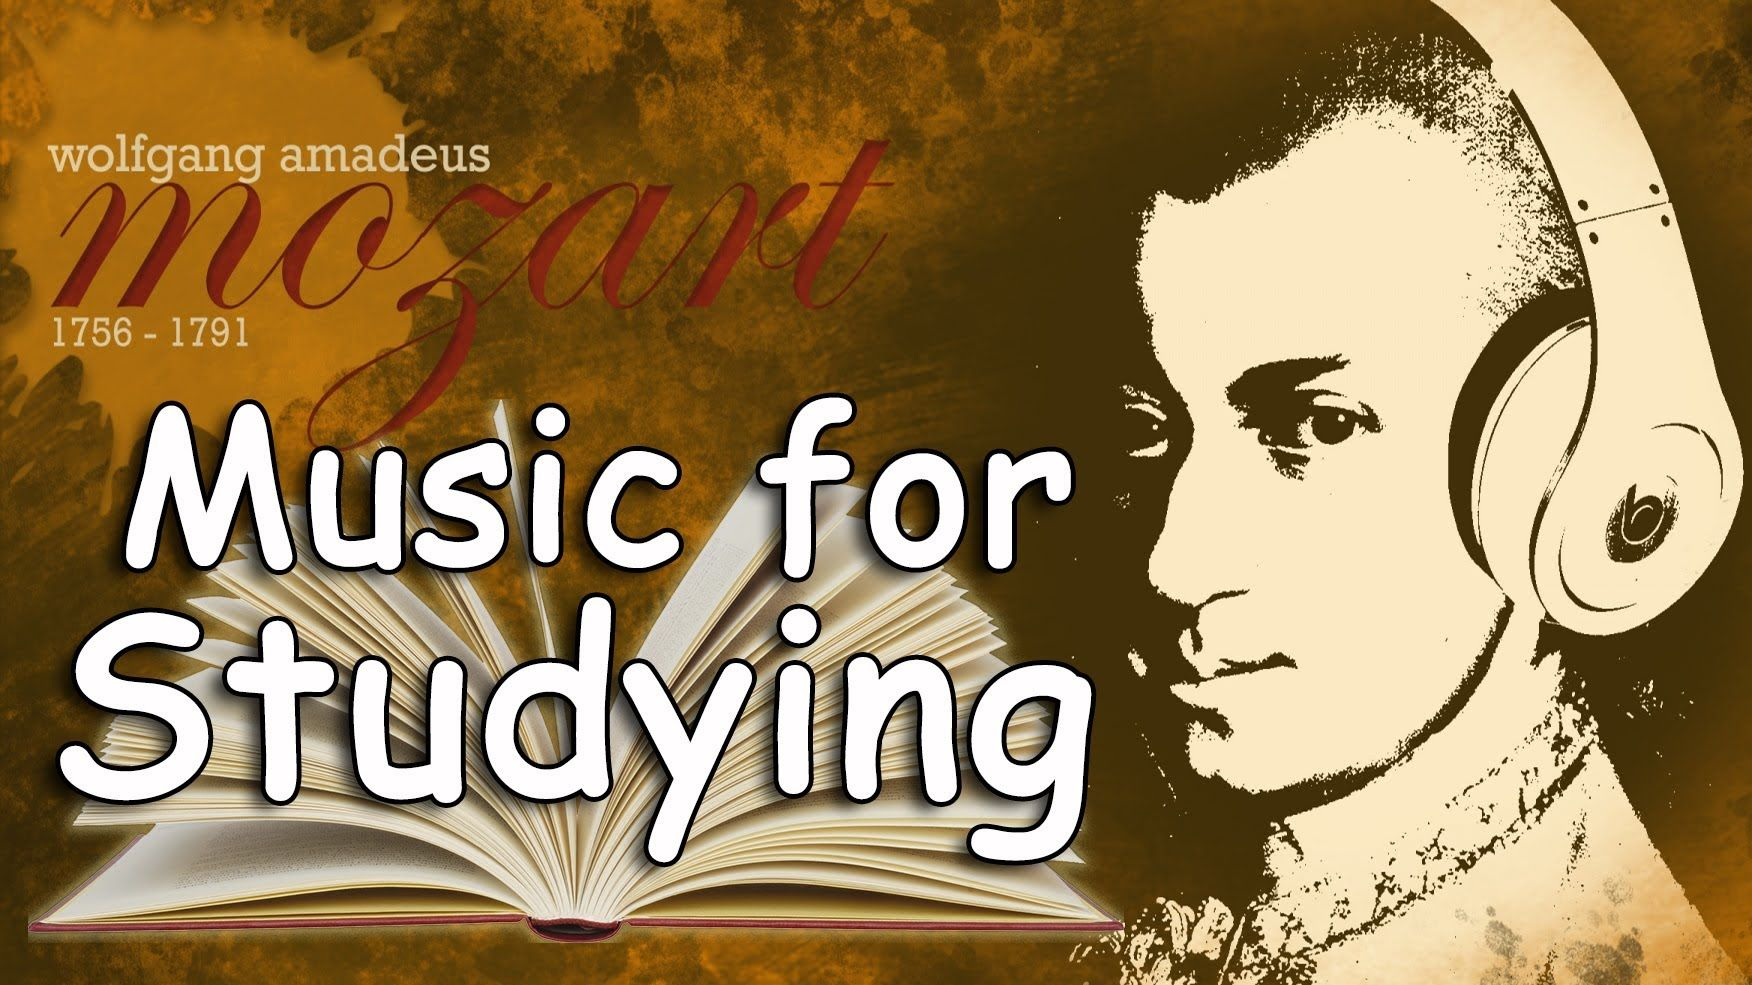 ★3 HOURS★ of Classical Music for Studying - Study Music Mozart - Relaxin...